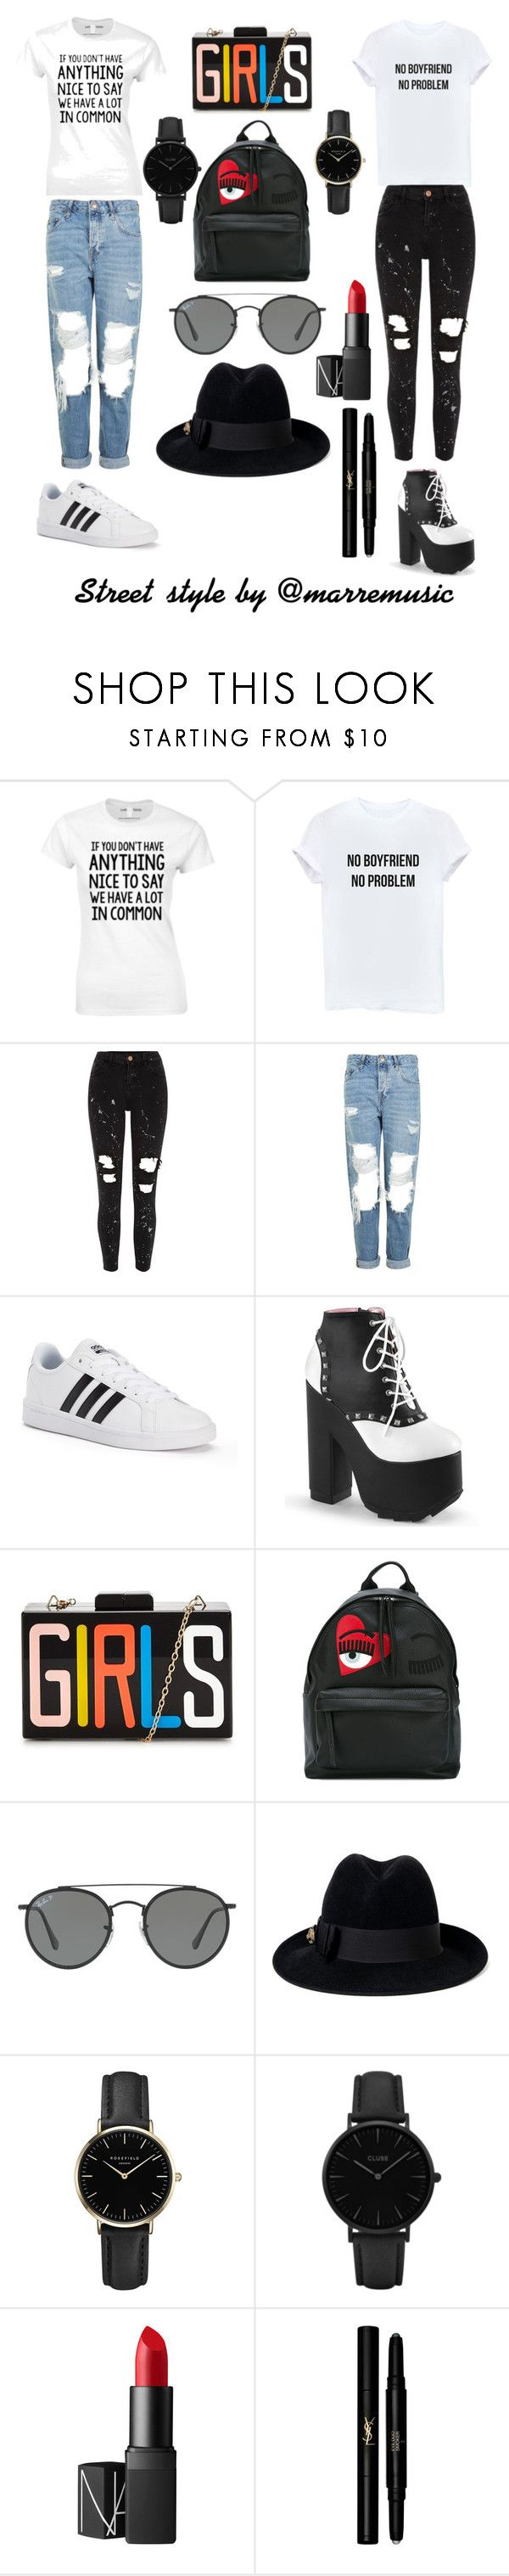 """Sin título #42"" by marremusic on Polyvore featuring moda, River Island, Topshop, adidas, Chiara Ferragni, Ray-Ban, Gucci, ROSEFIELD, CLUSE y NARS Cosmetics"